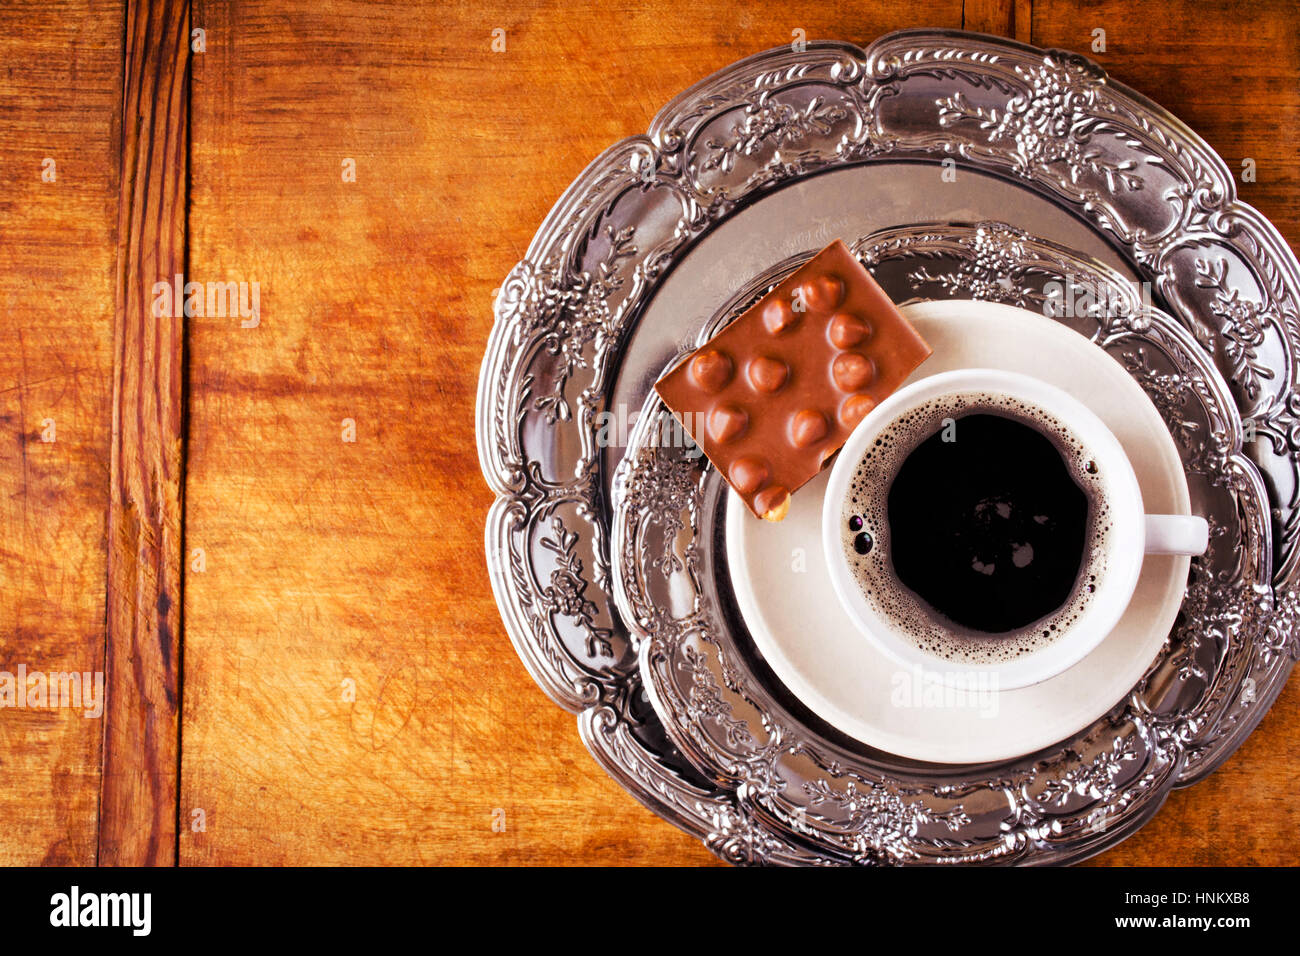 Hot coffee and chocolate bar served on vintage plates on wooden background, top view - Stock Image